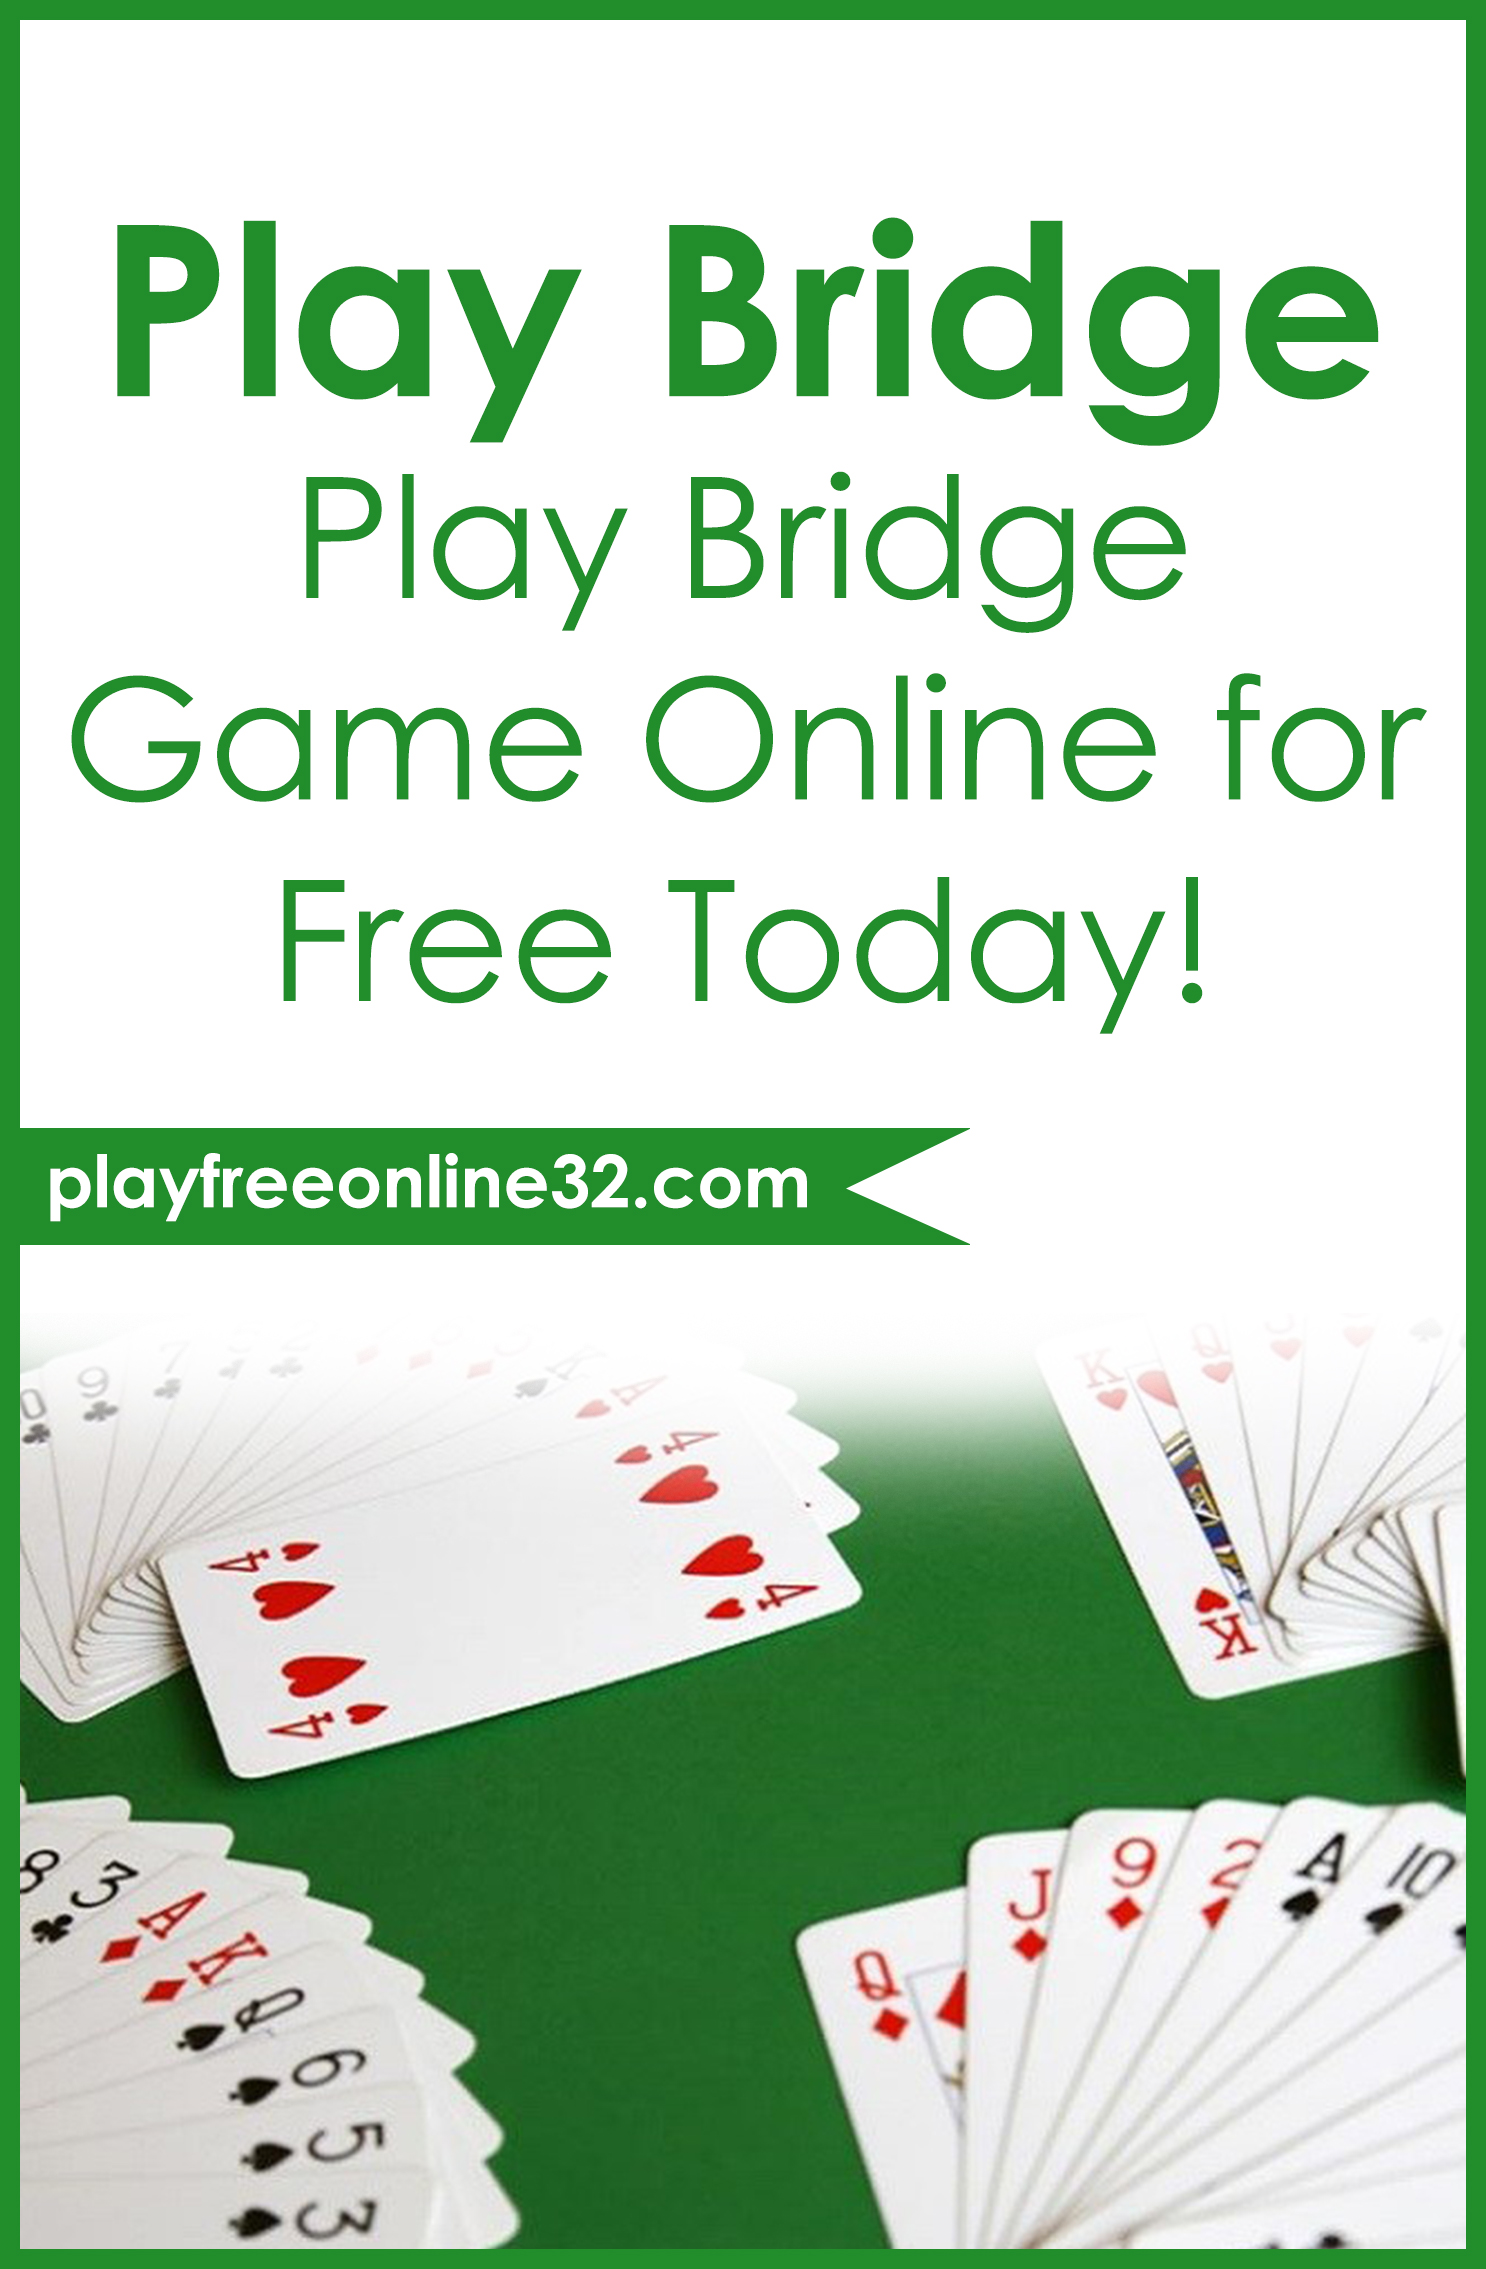 Play Bridge Online • Play Bridge Game Online for Free Today!